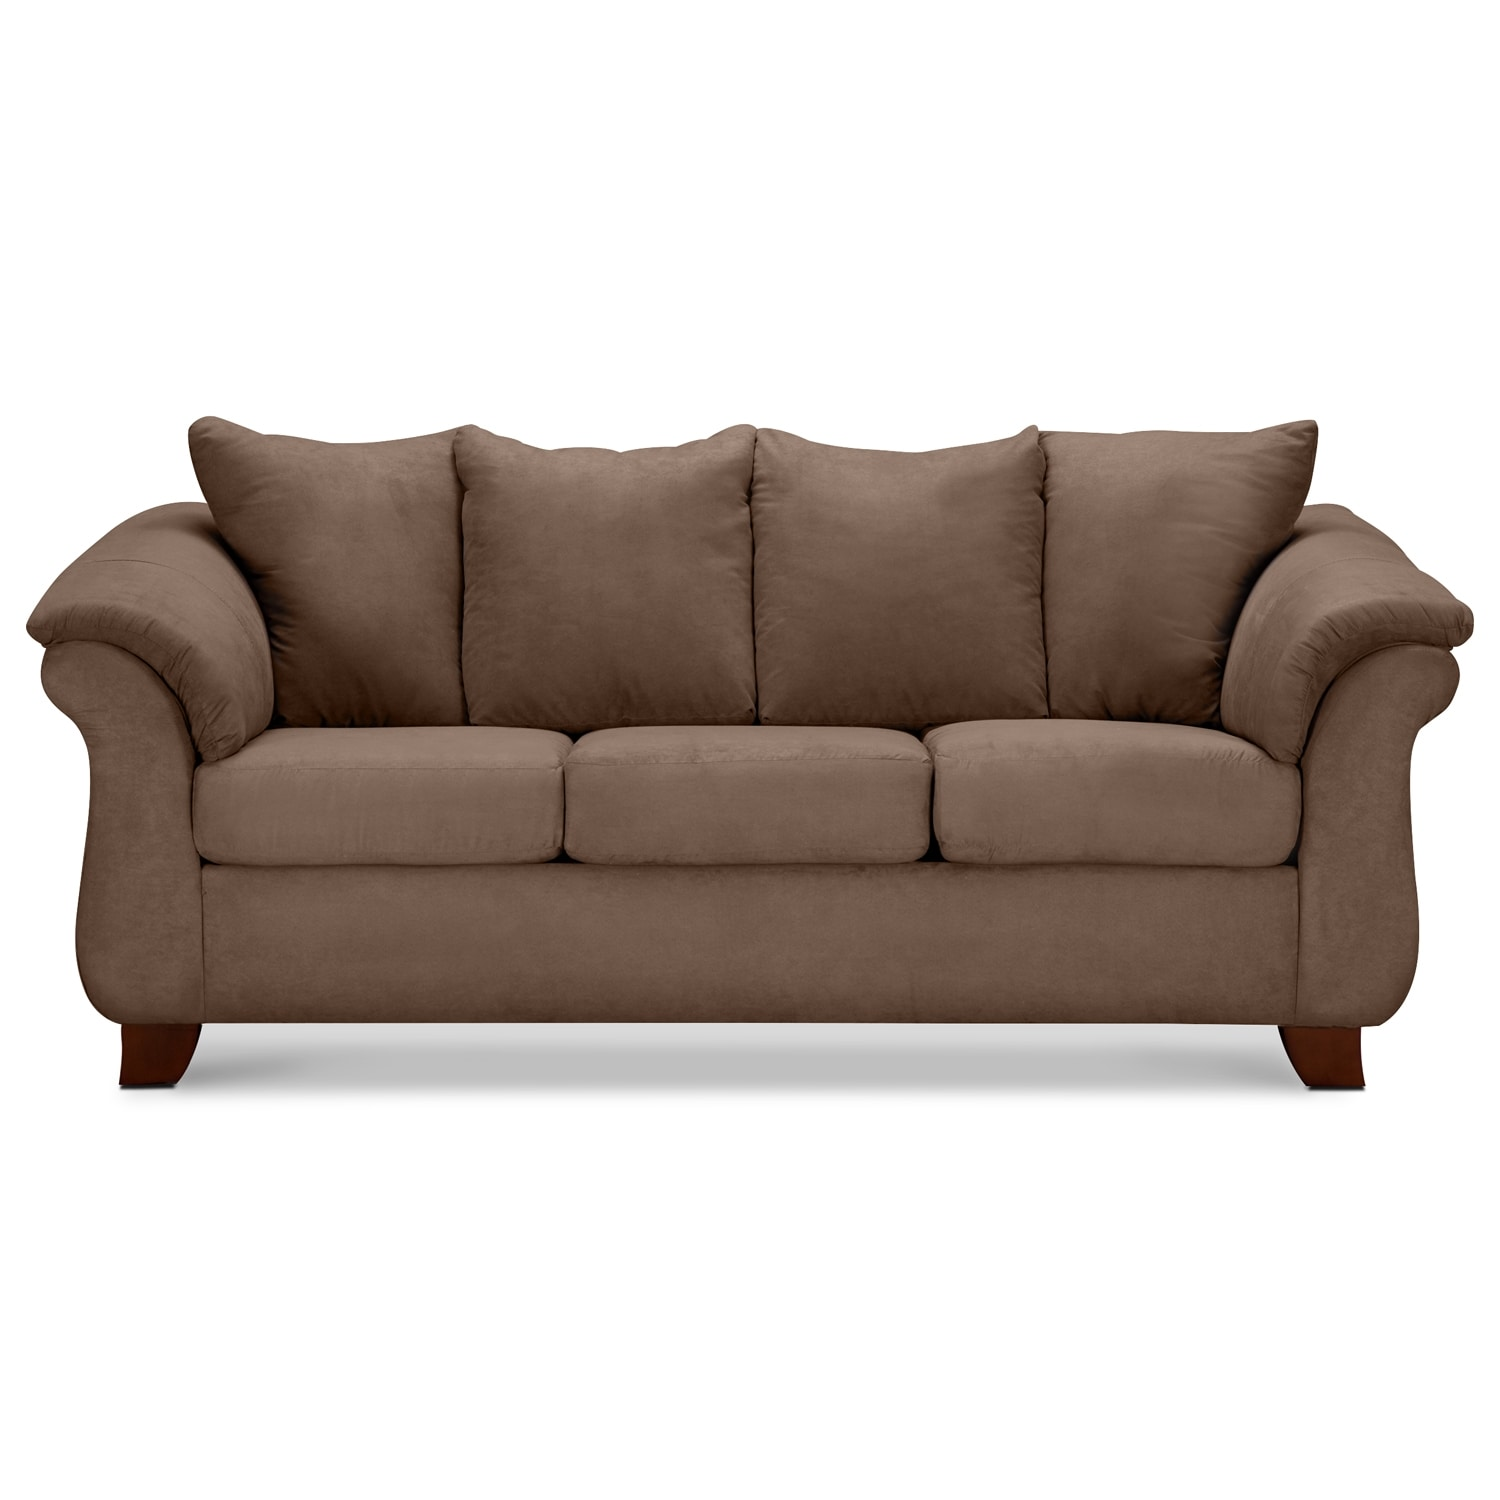 Adrian sofa taupe value city furniture for Living room sofa